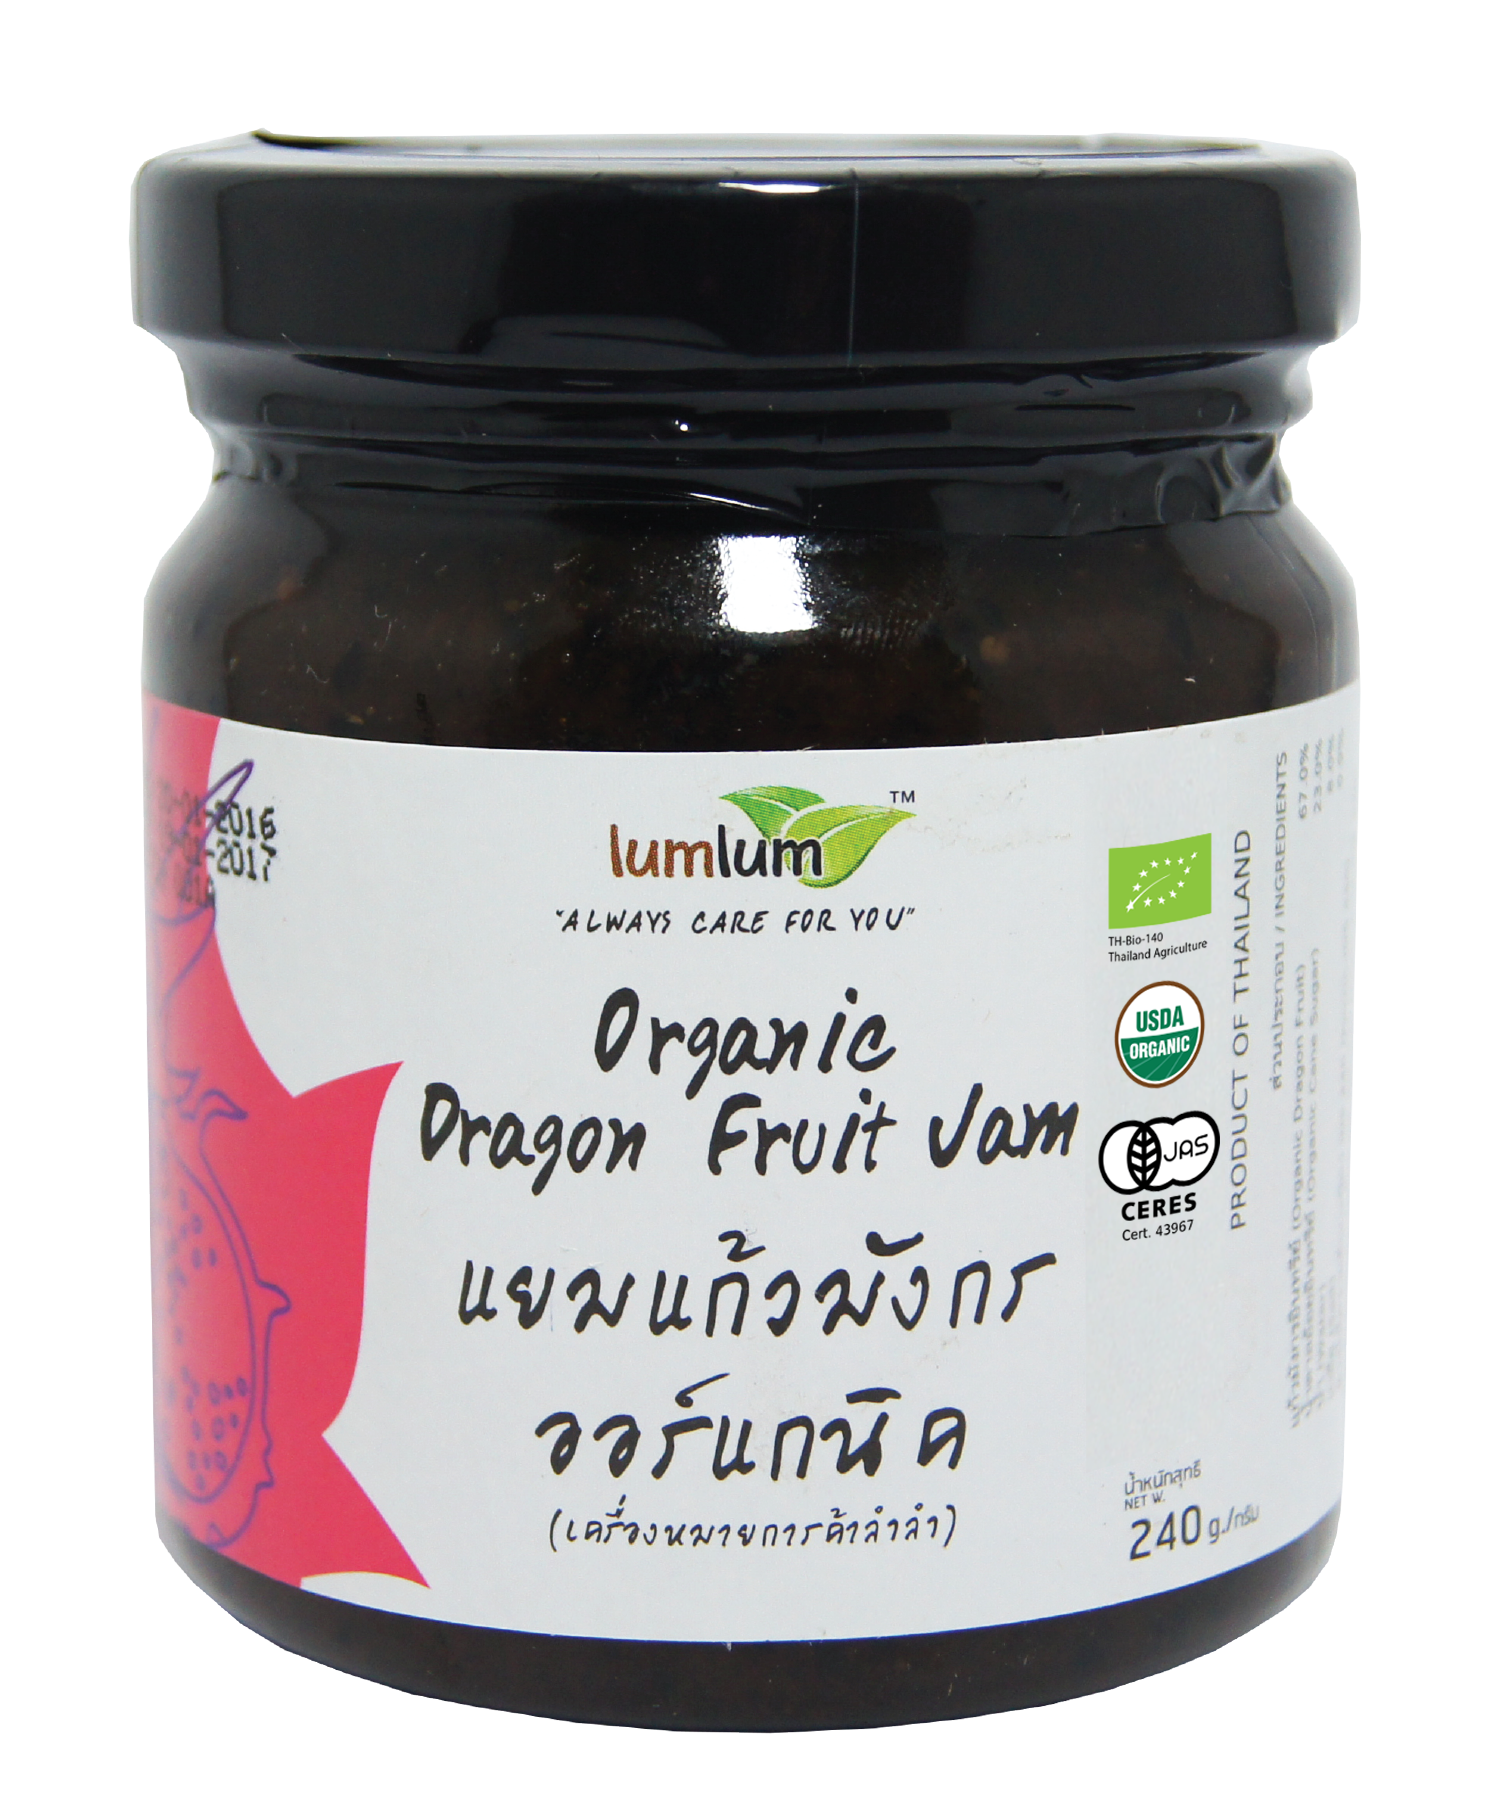 Organic Dragon Fruit Jam